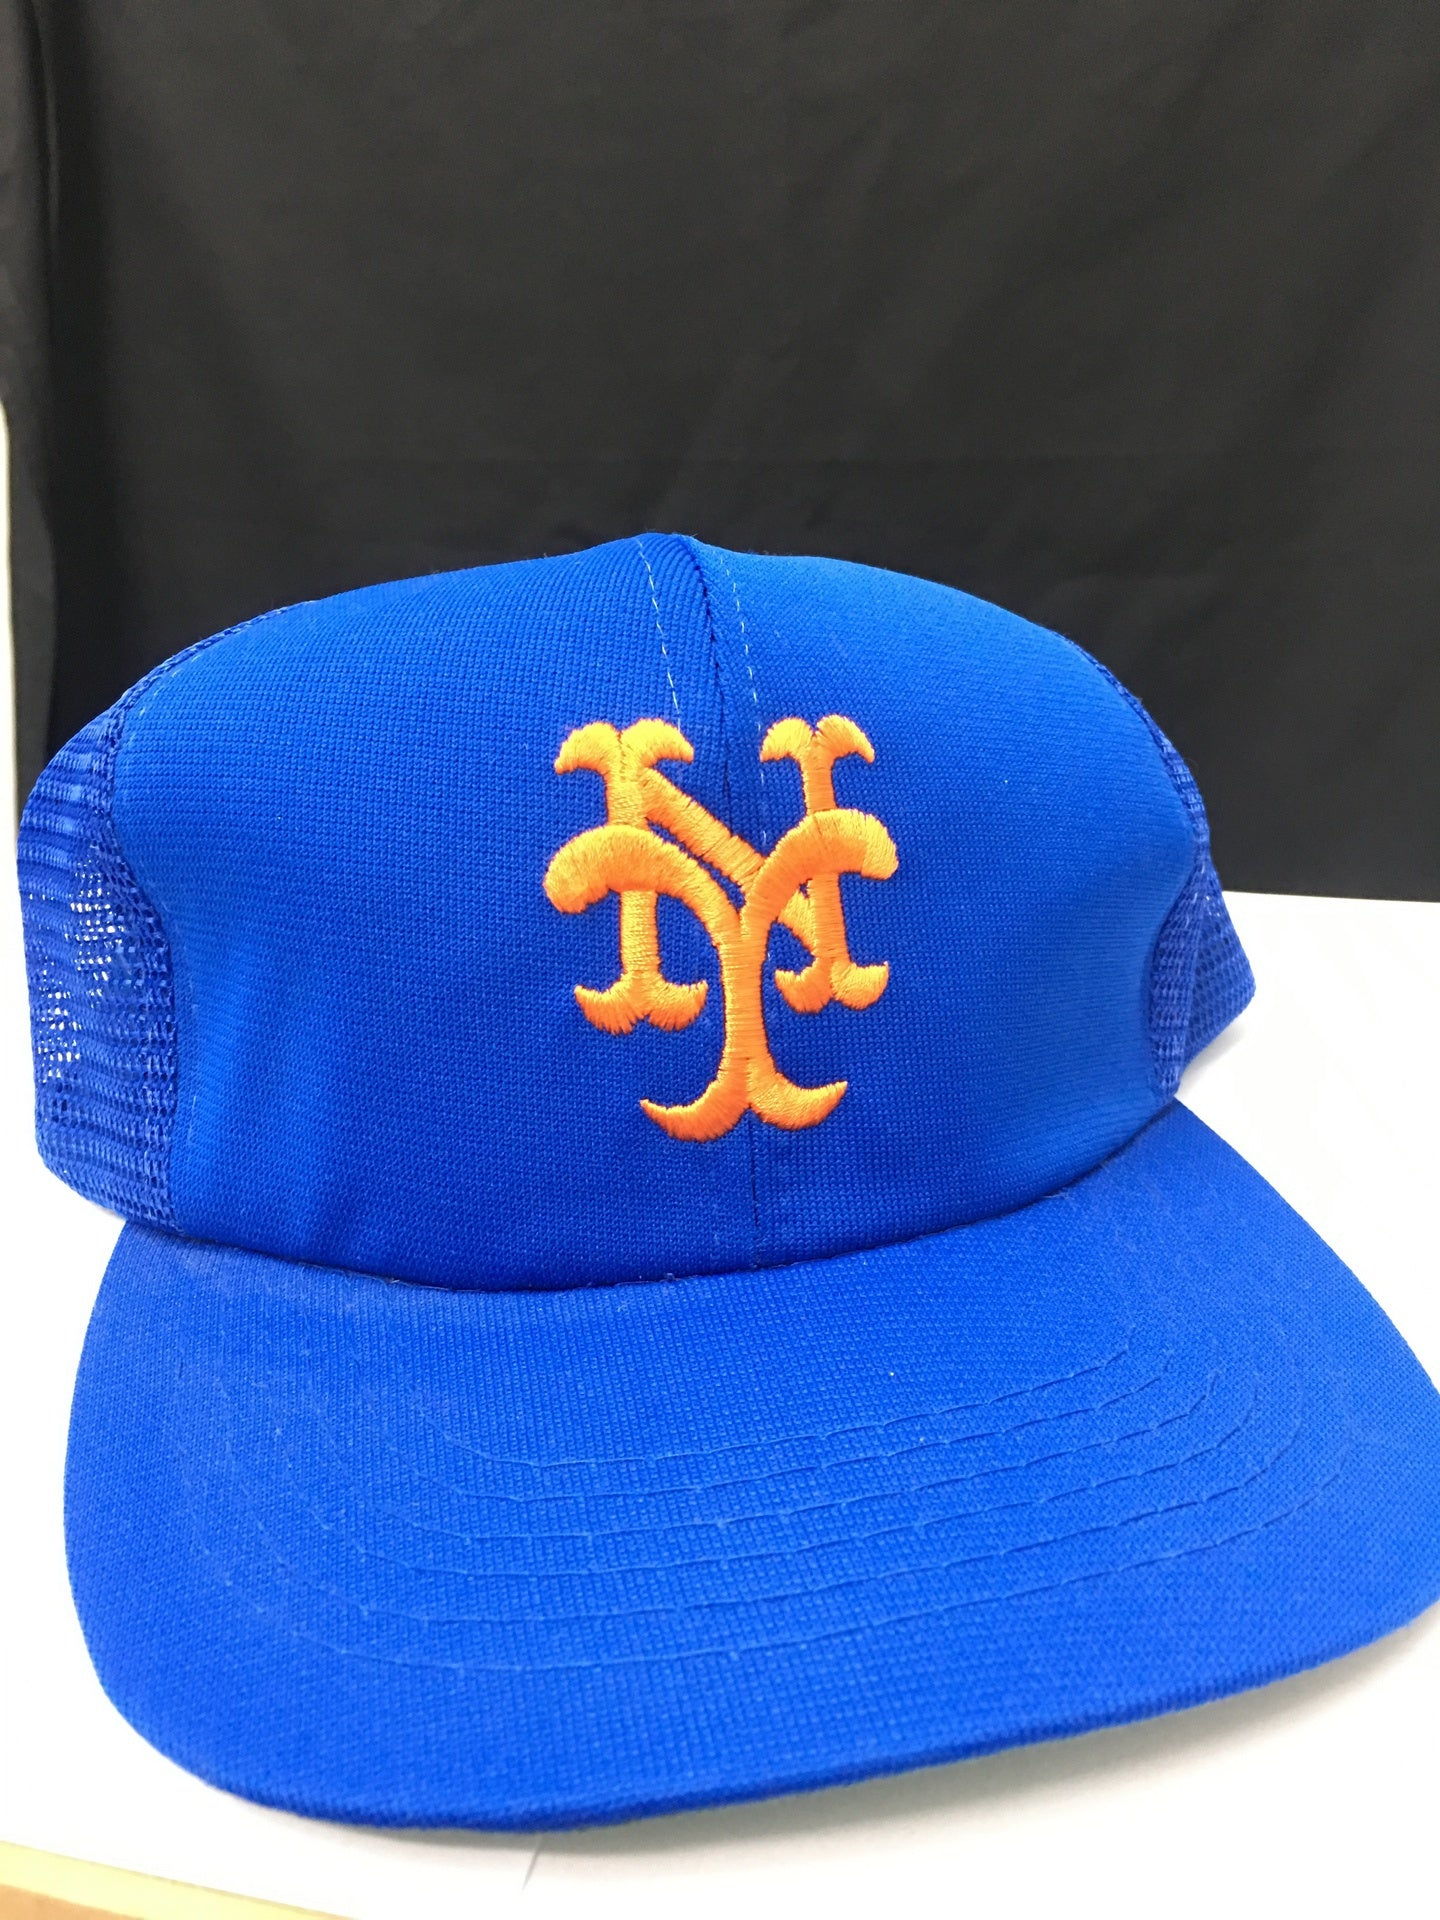 New York Giants Mesh Adjustable Truckers Cap